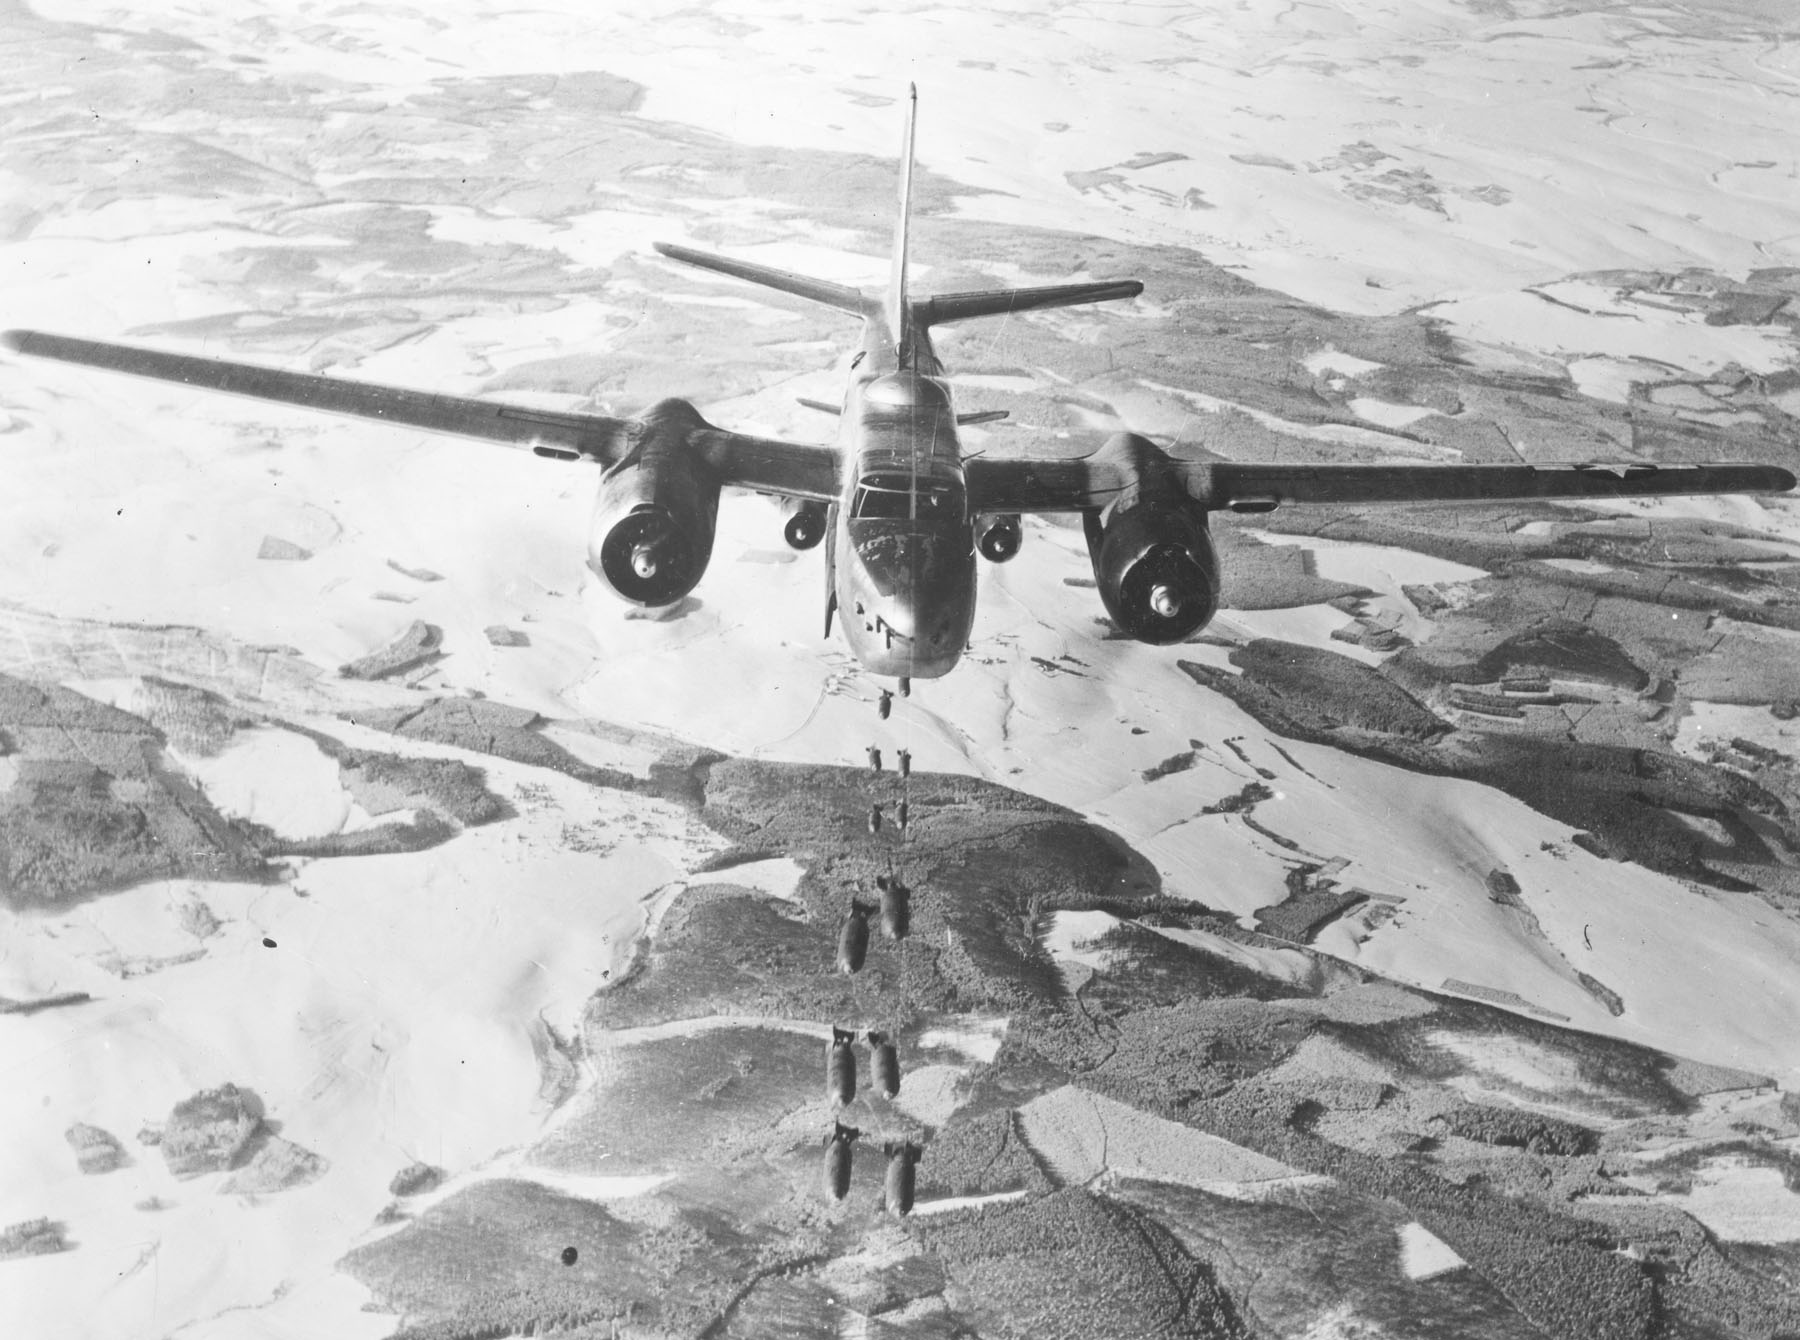 A-26_Invader_over_Germany_in_1945.jpg